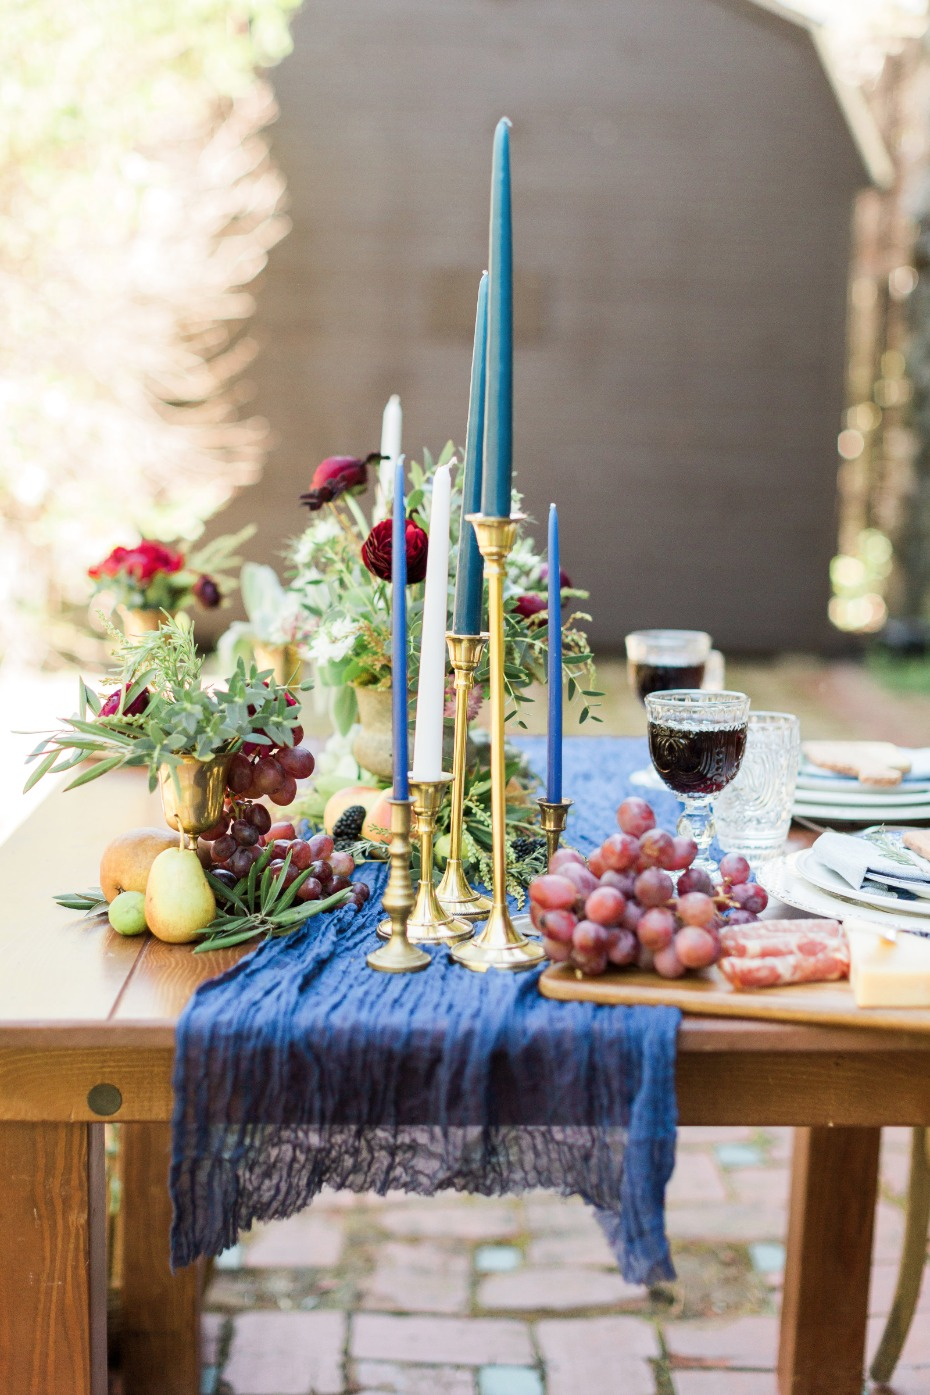 Italian inspired tablescape with blue candles